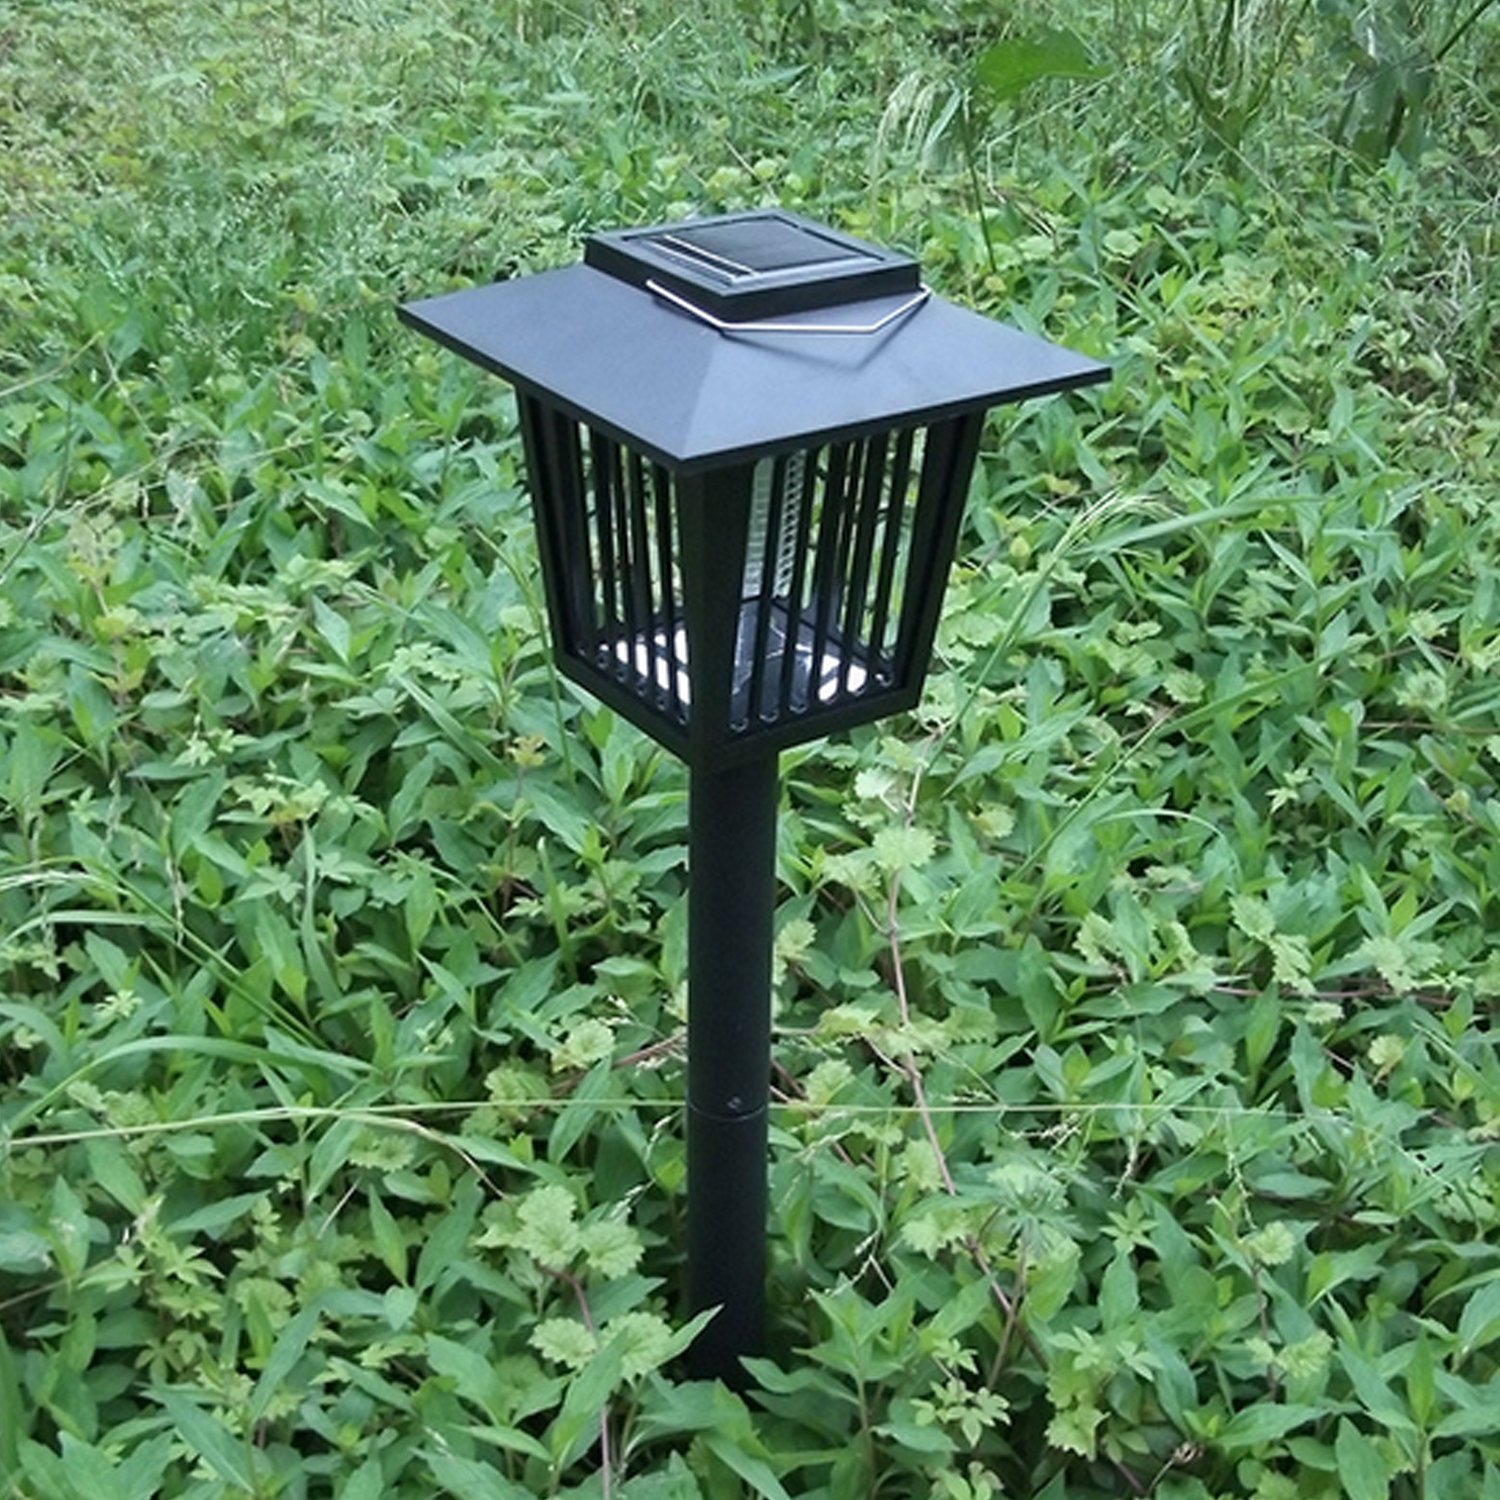 Solar Powered Bug Zapper Light, Solar Mosquito Killer Insect Killer Indoor Outdoor Fly Pest Trap Lamp Portable Garden Lawn Light For Garden, Patio, Outdoor Ground Residential, Commercial and Industri by THE SAFETY ZONEY (Image #4)